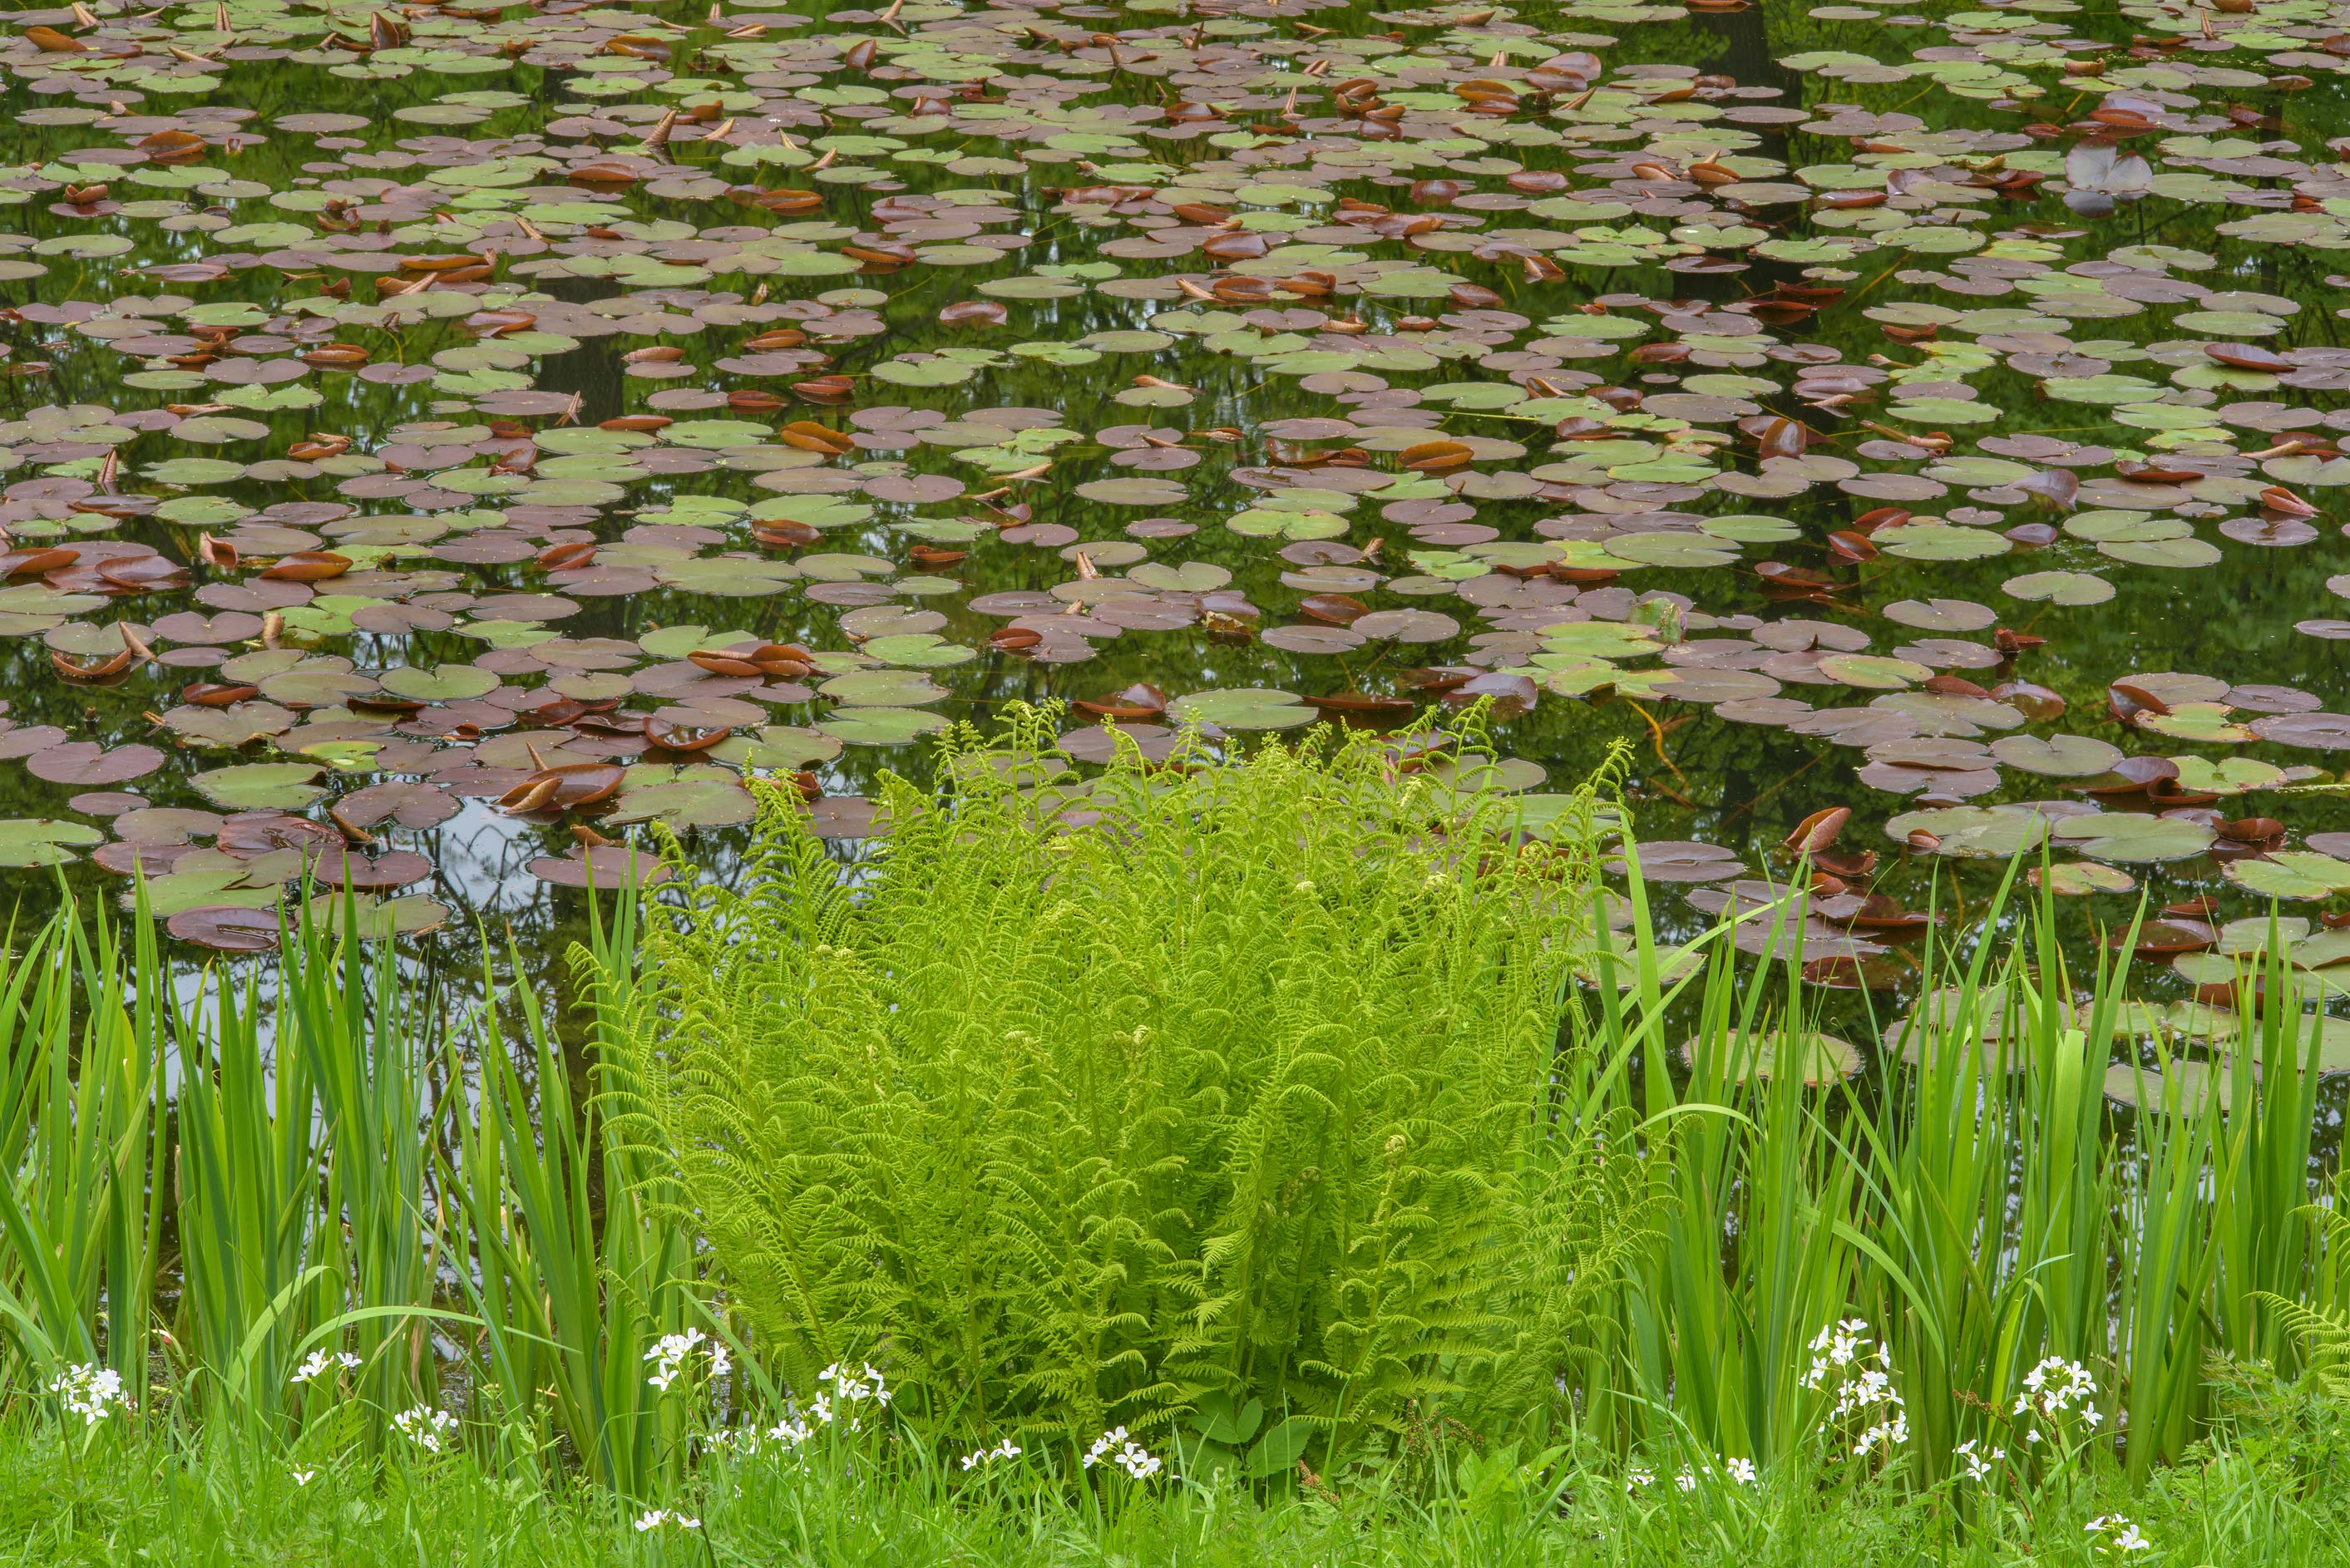 Lily pond in Botanic Gardens of Komarov Botanical Institute. St.Petersburg, Russia